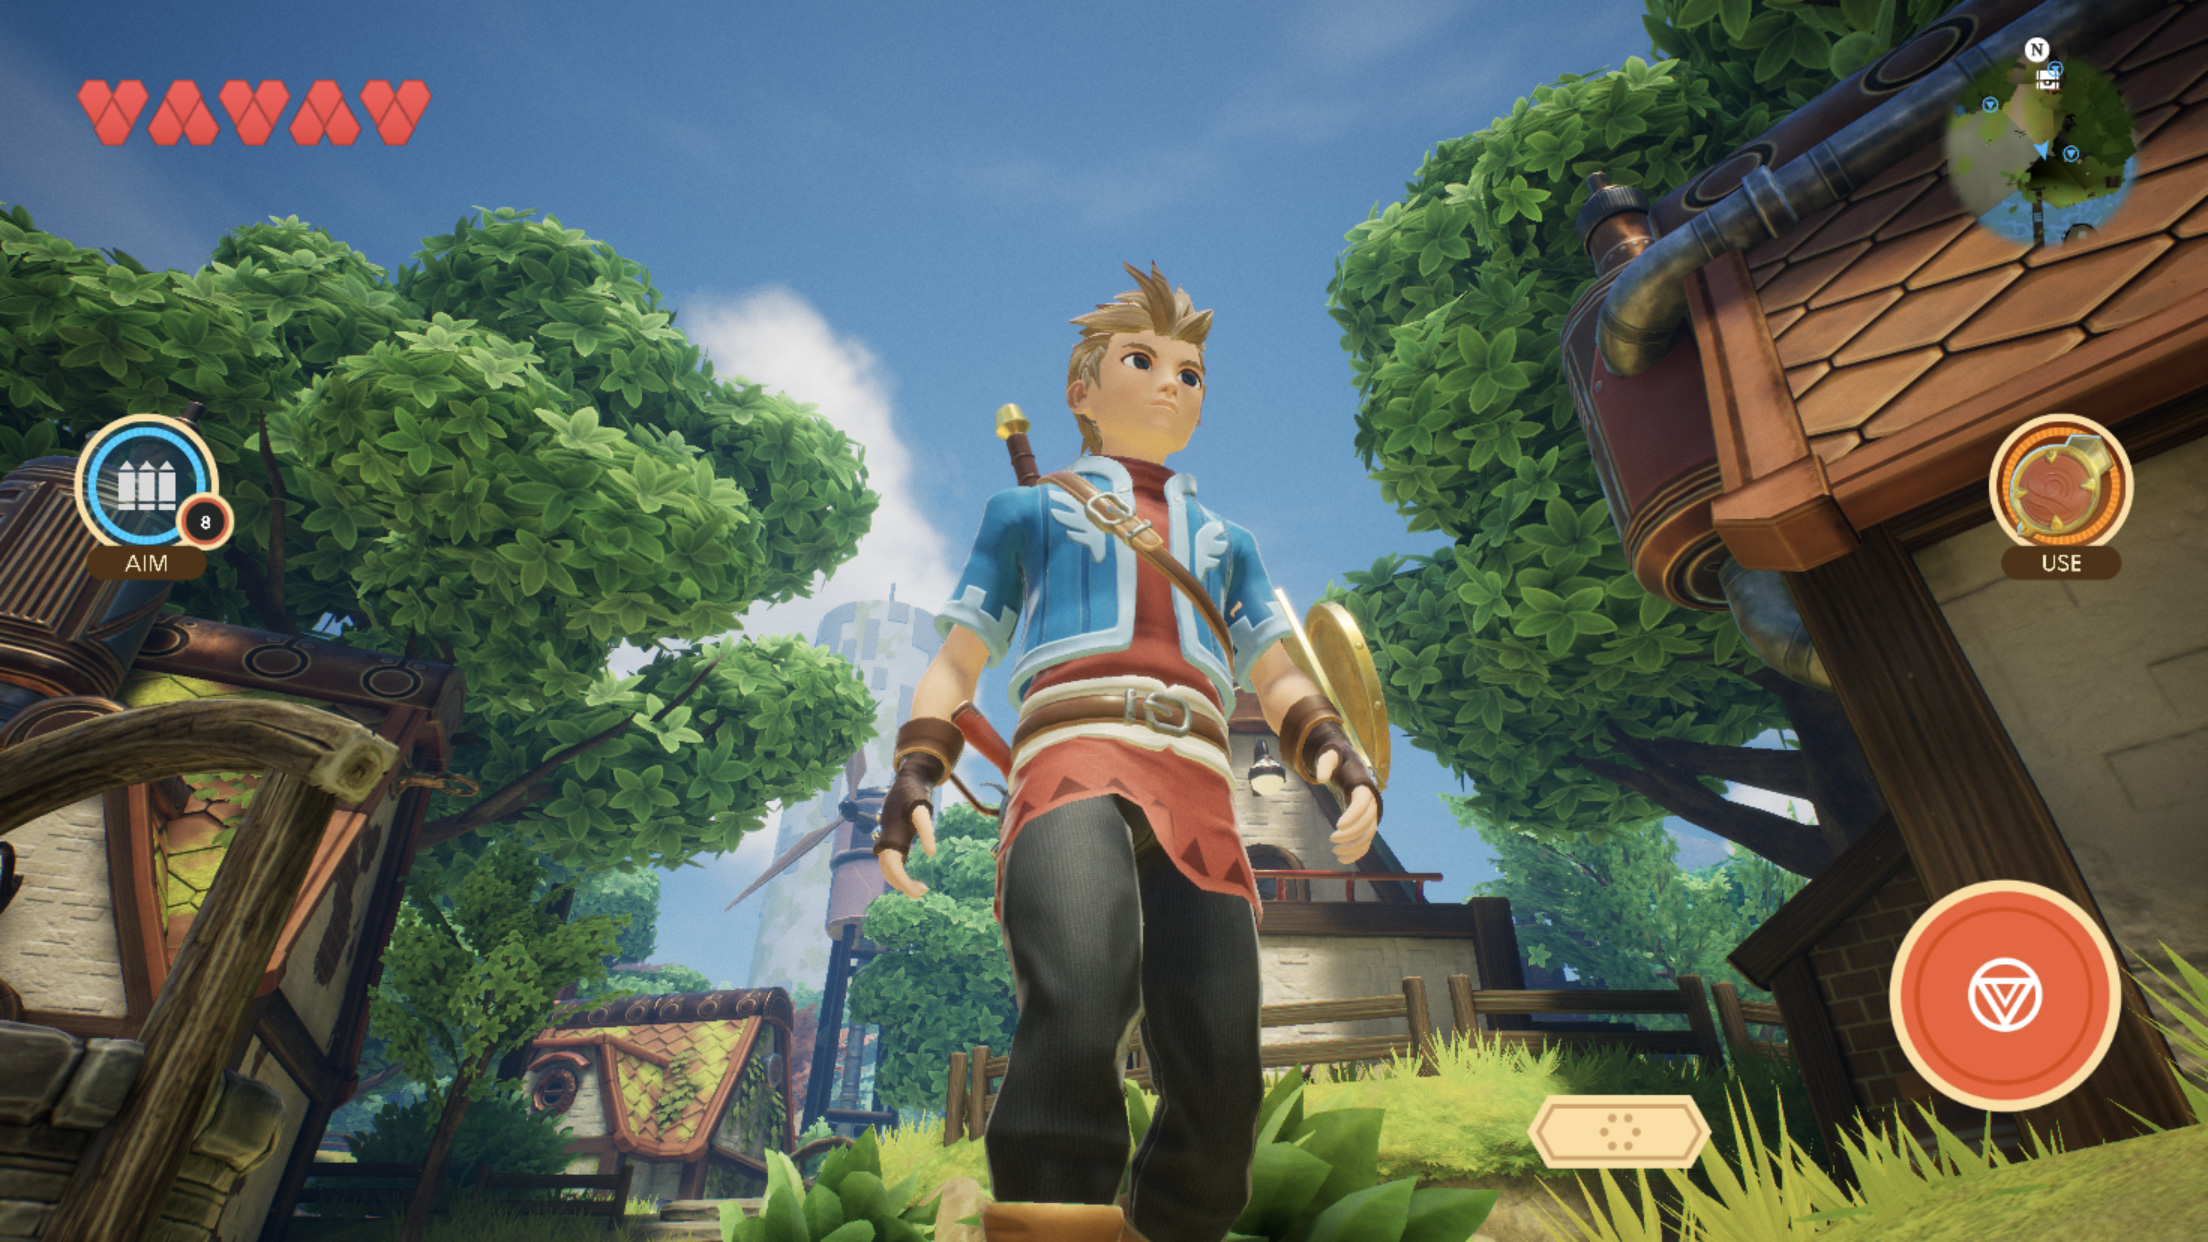 Oceanhorn 2's hero stands defiantly out in the field, waiting for an adventure.